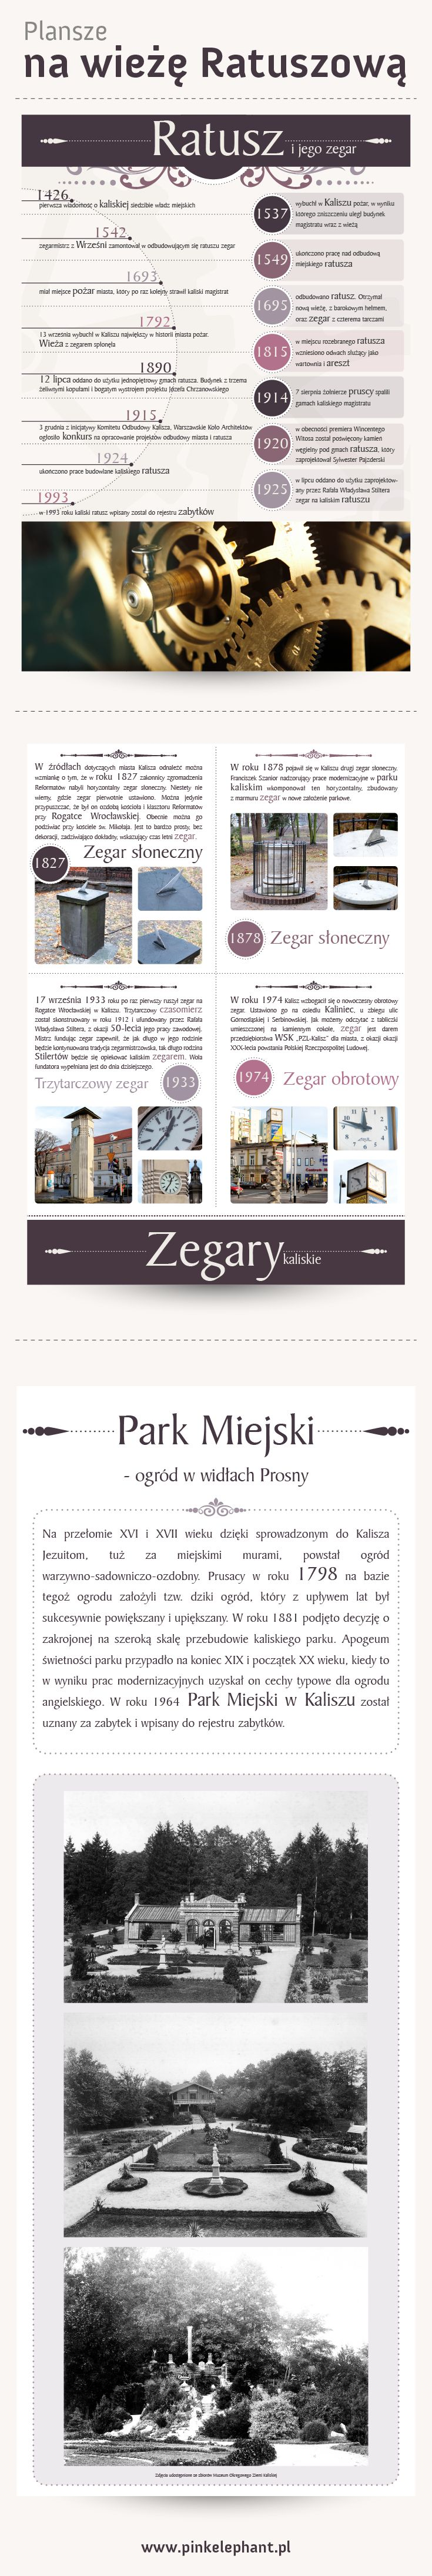 Posters of Kalisz tower | Design: www.pinkelephant.pl /posters /layout /portfolio /design